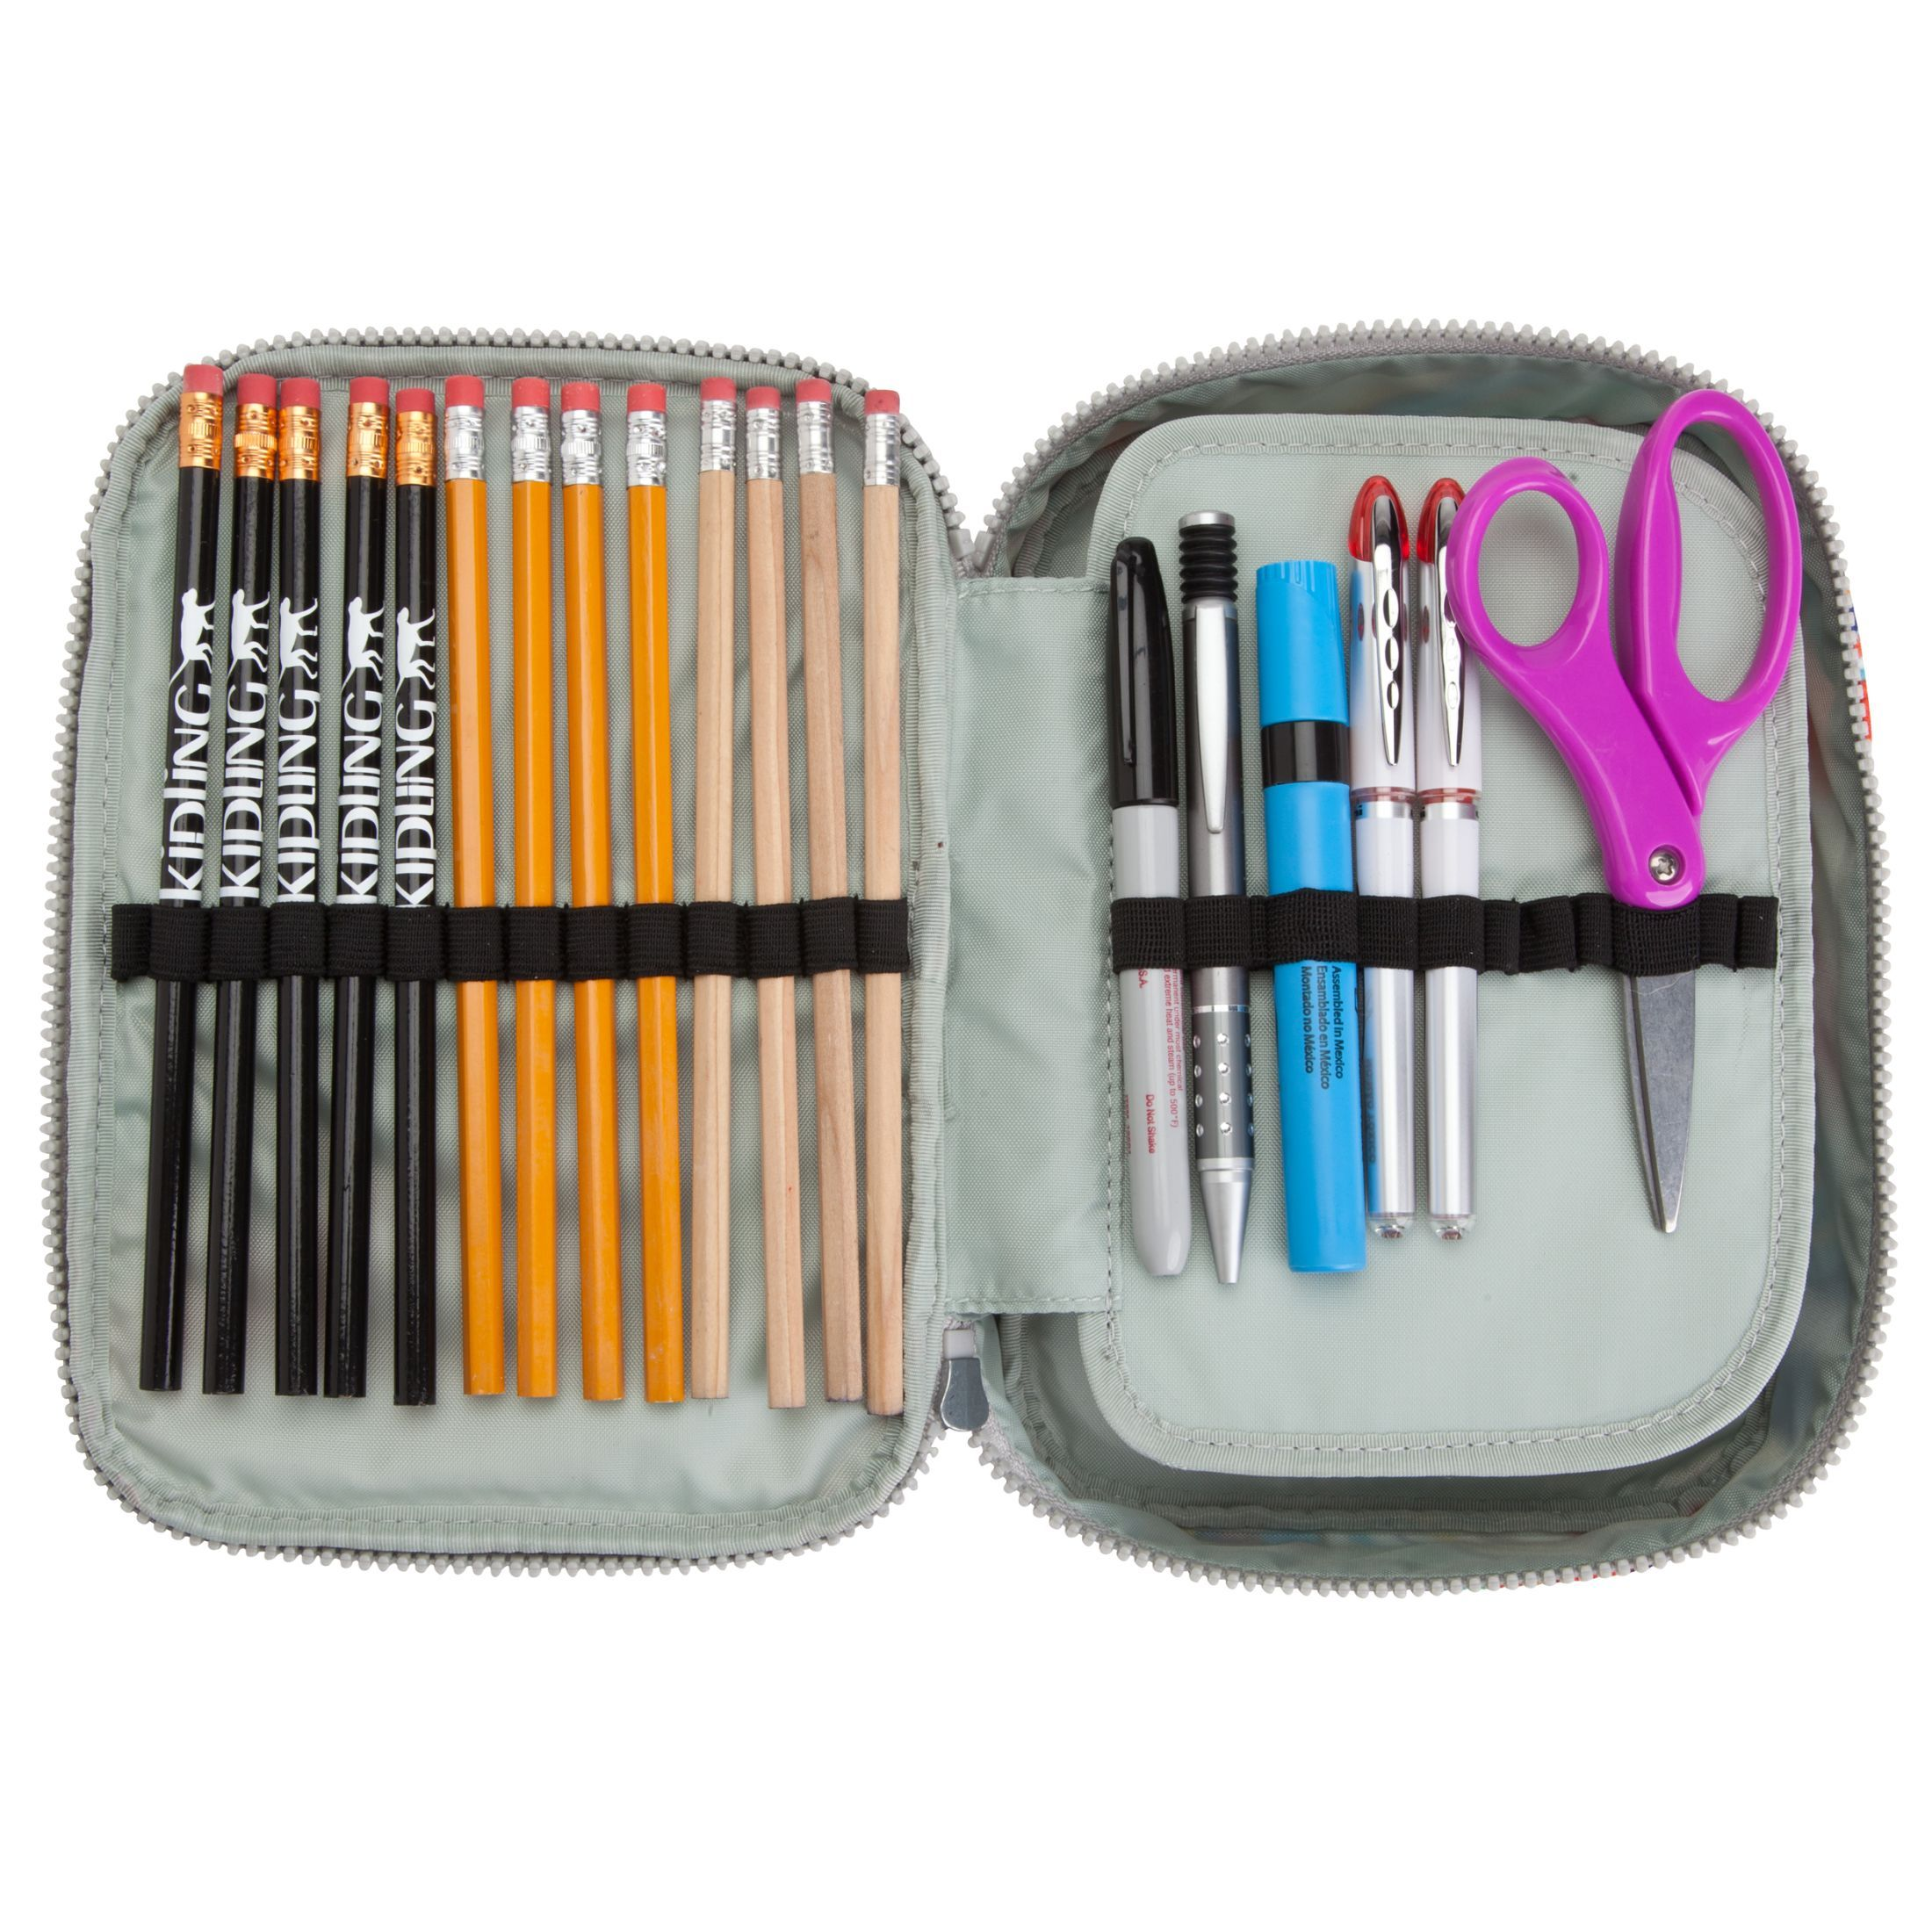 Kipling 100 Pens Case Pencil Case Organization Kipling